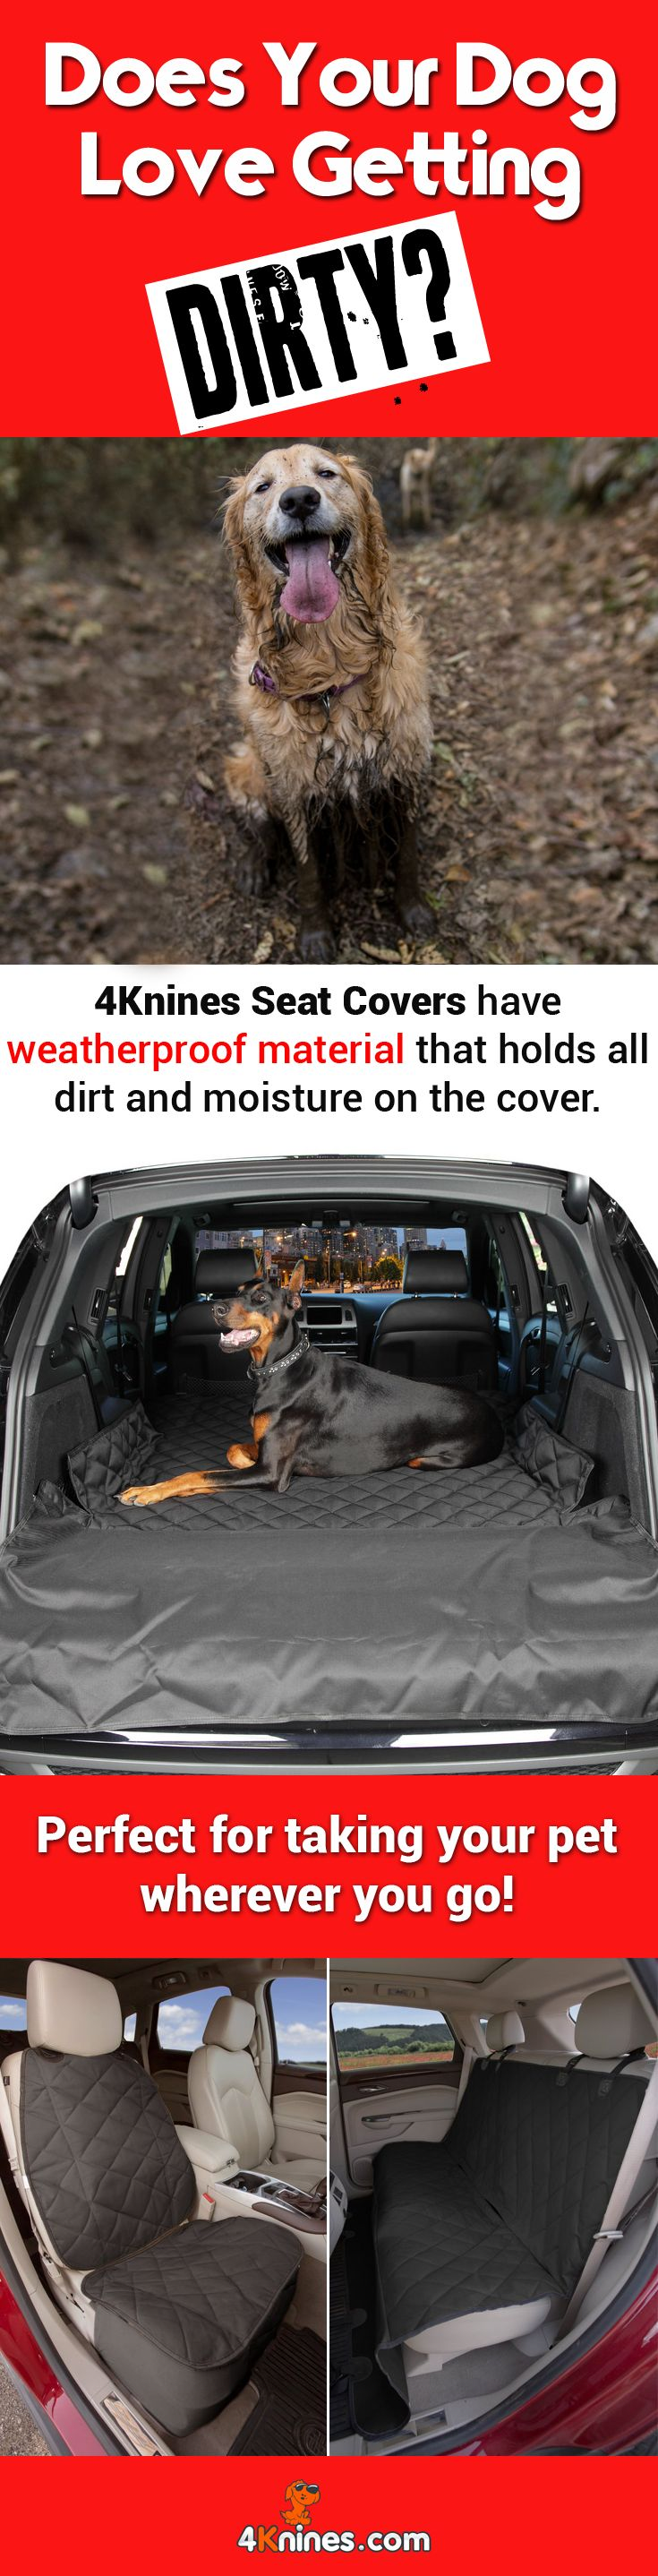 Fed up with cleaning your car seats of dog fur and mud? 4Knines seat covers are made of heavy duty, easy to clean, waterproof material that protects your car seats from fur, dirt and claw marks. http://4knines.com/collections/all/